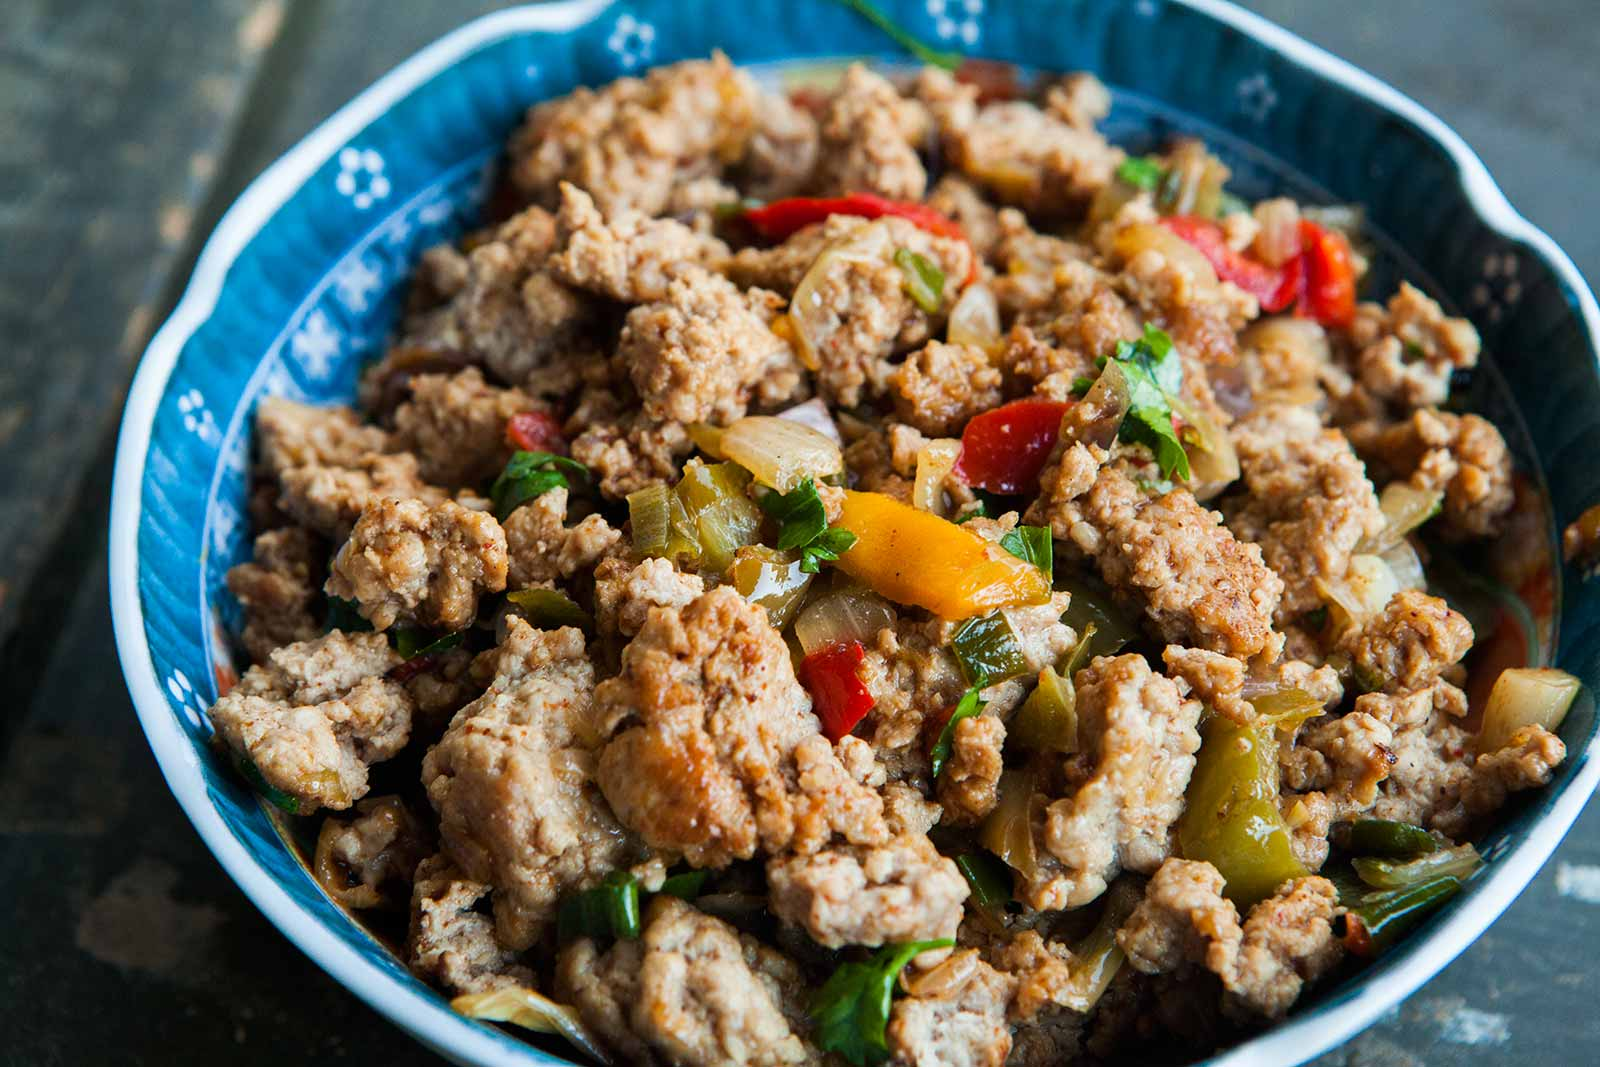 how to thaw ground turkey in microwave